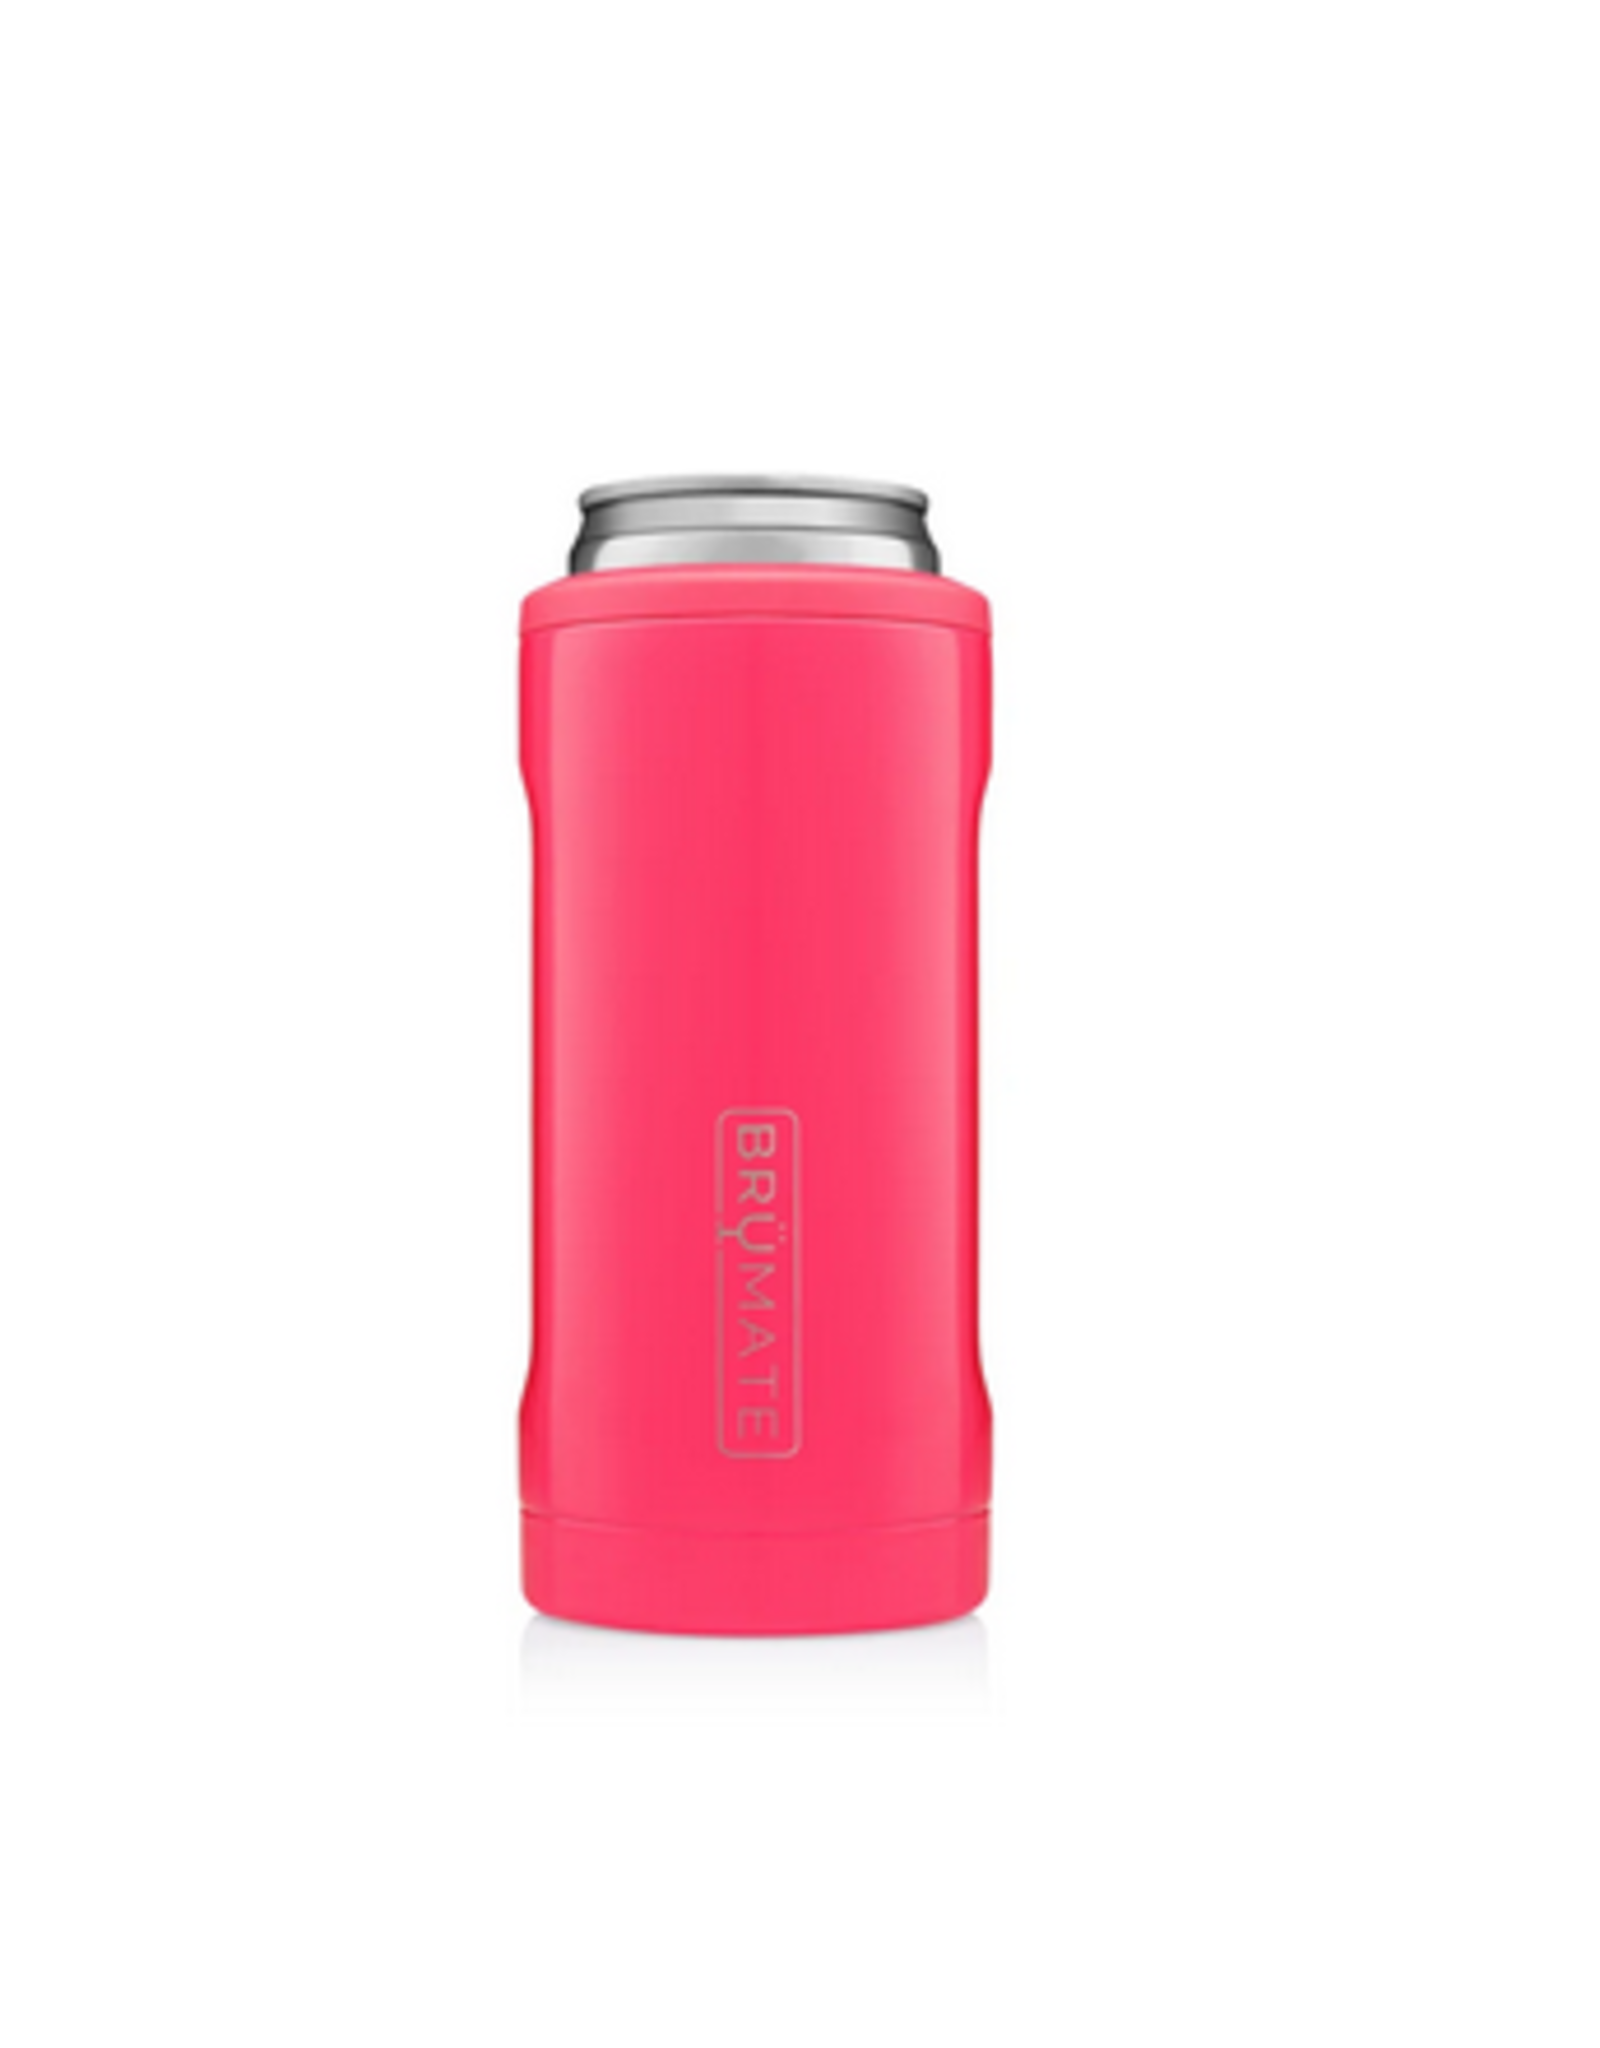 Hopsulator Slim Insulated Can-Cooler, neon pink